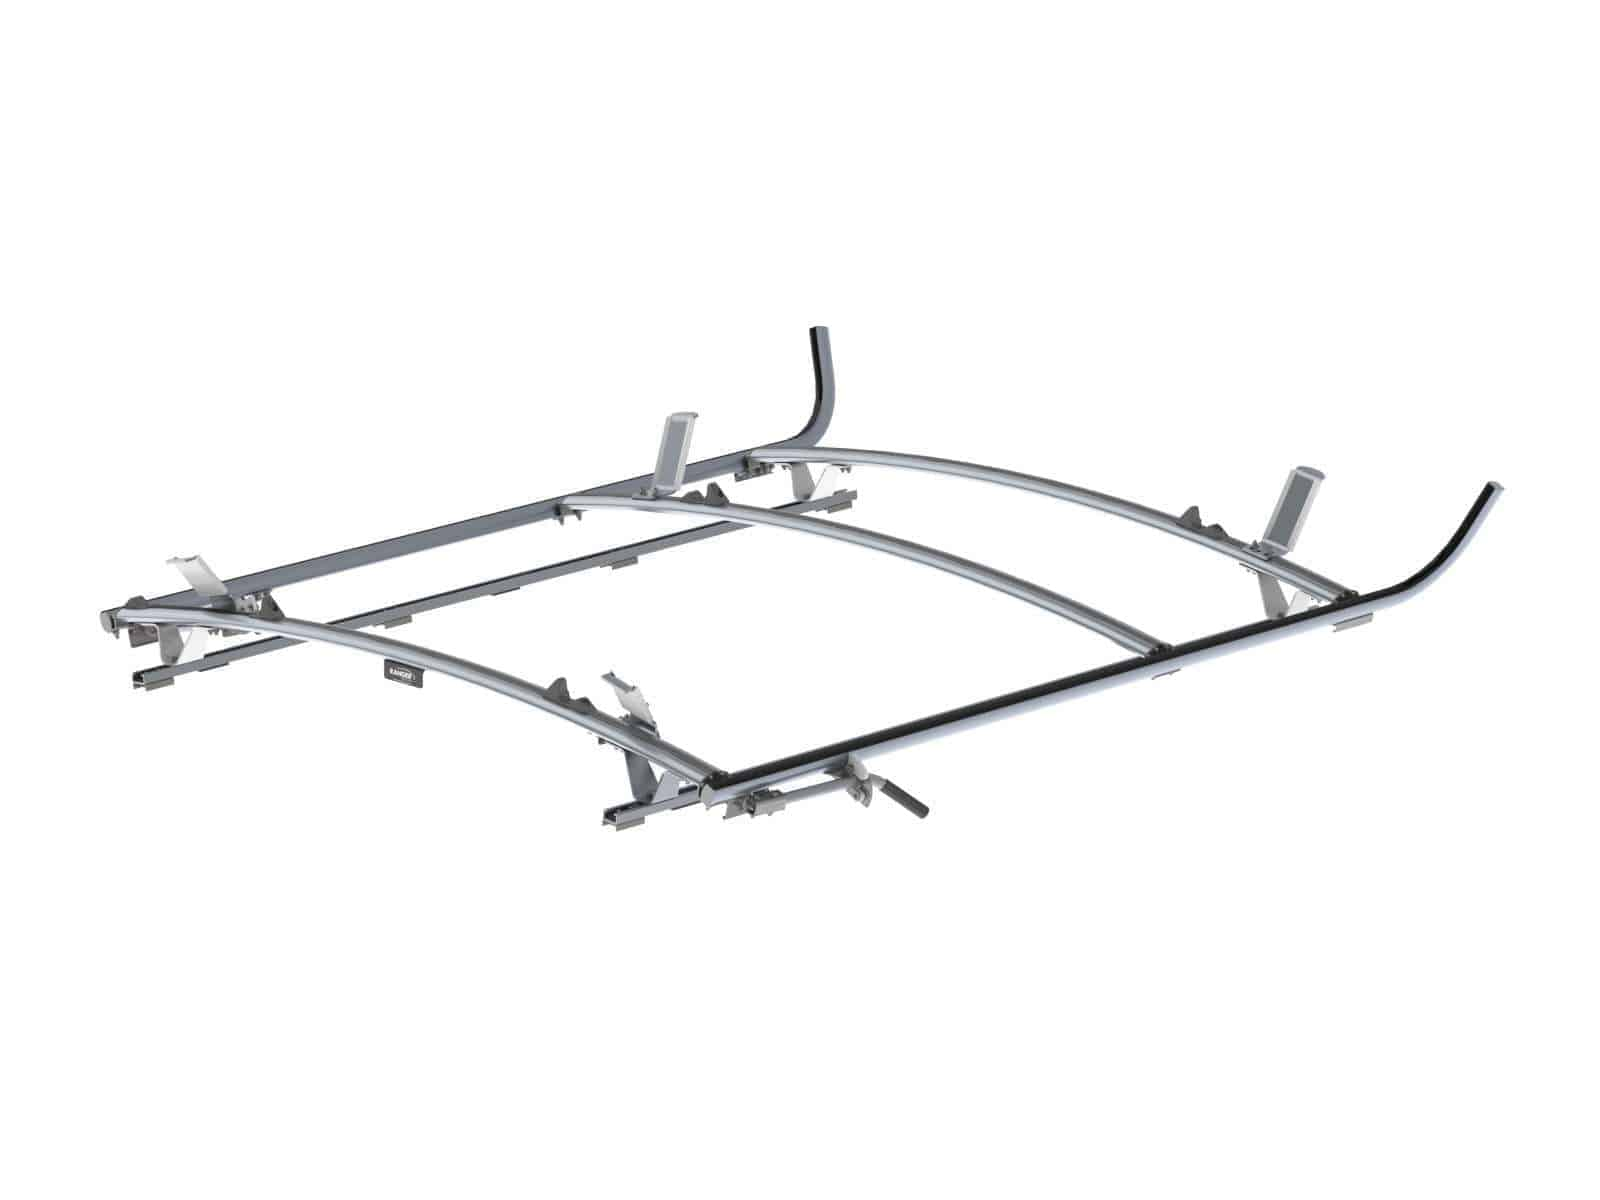 Combination Ram Promaster Ladder Rack 2 Bar System